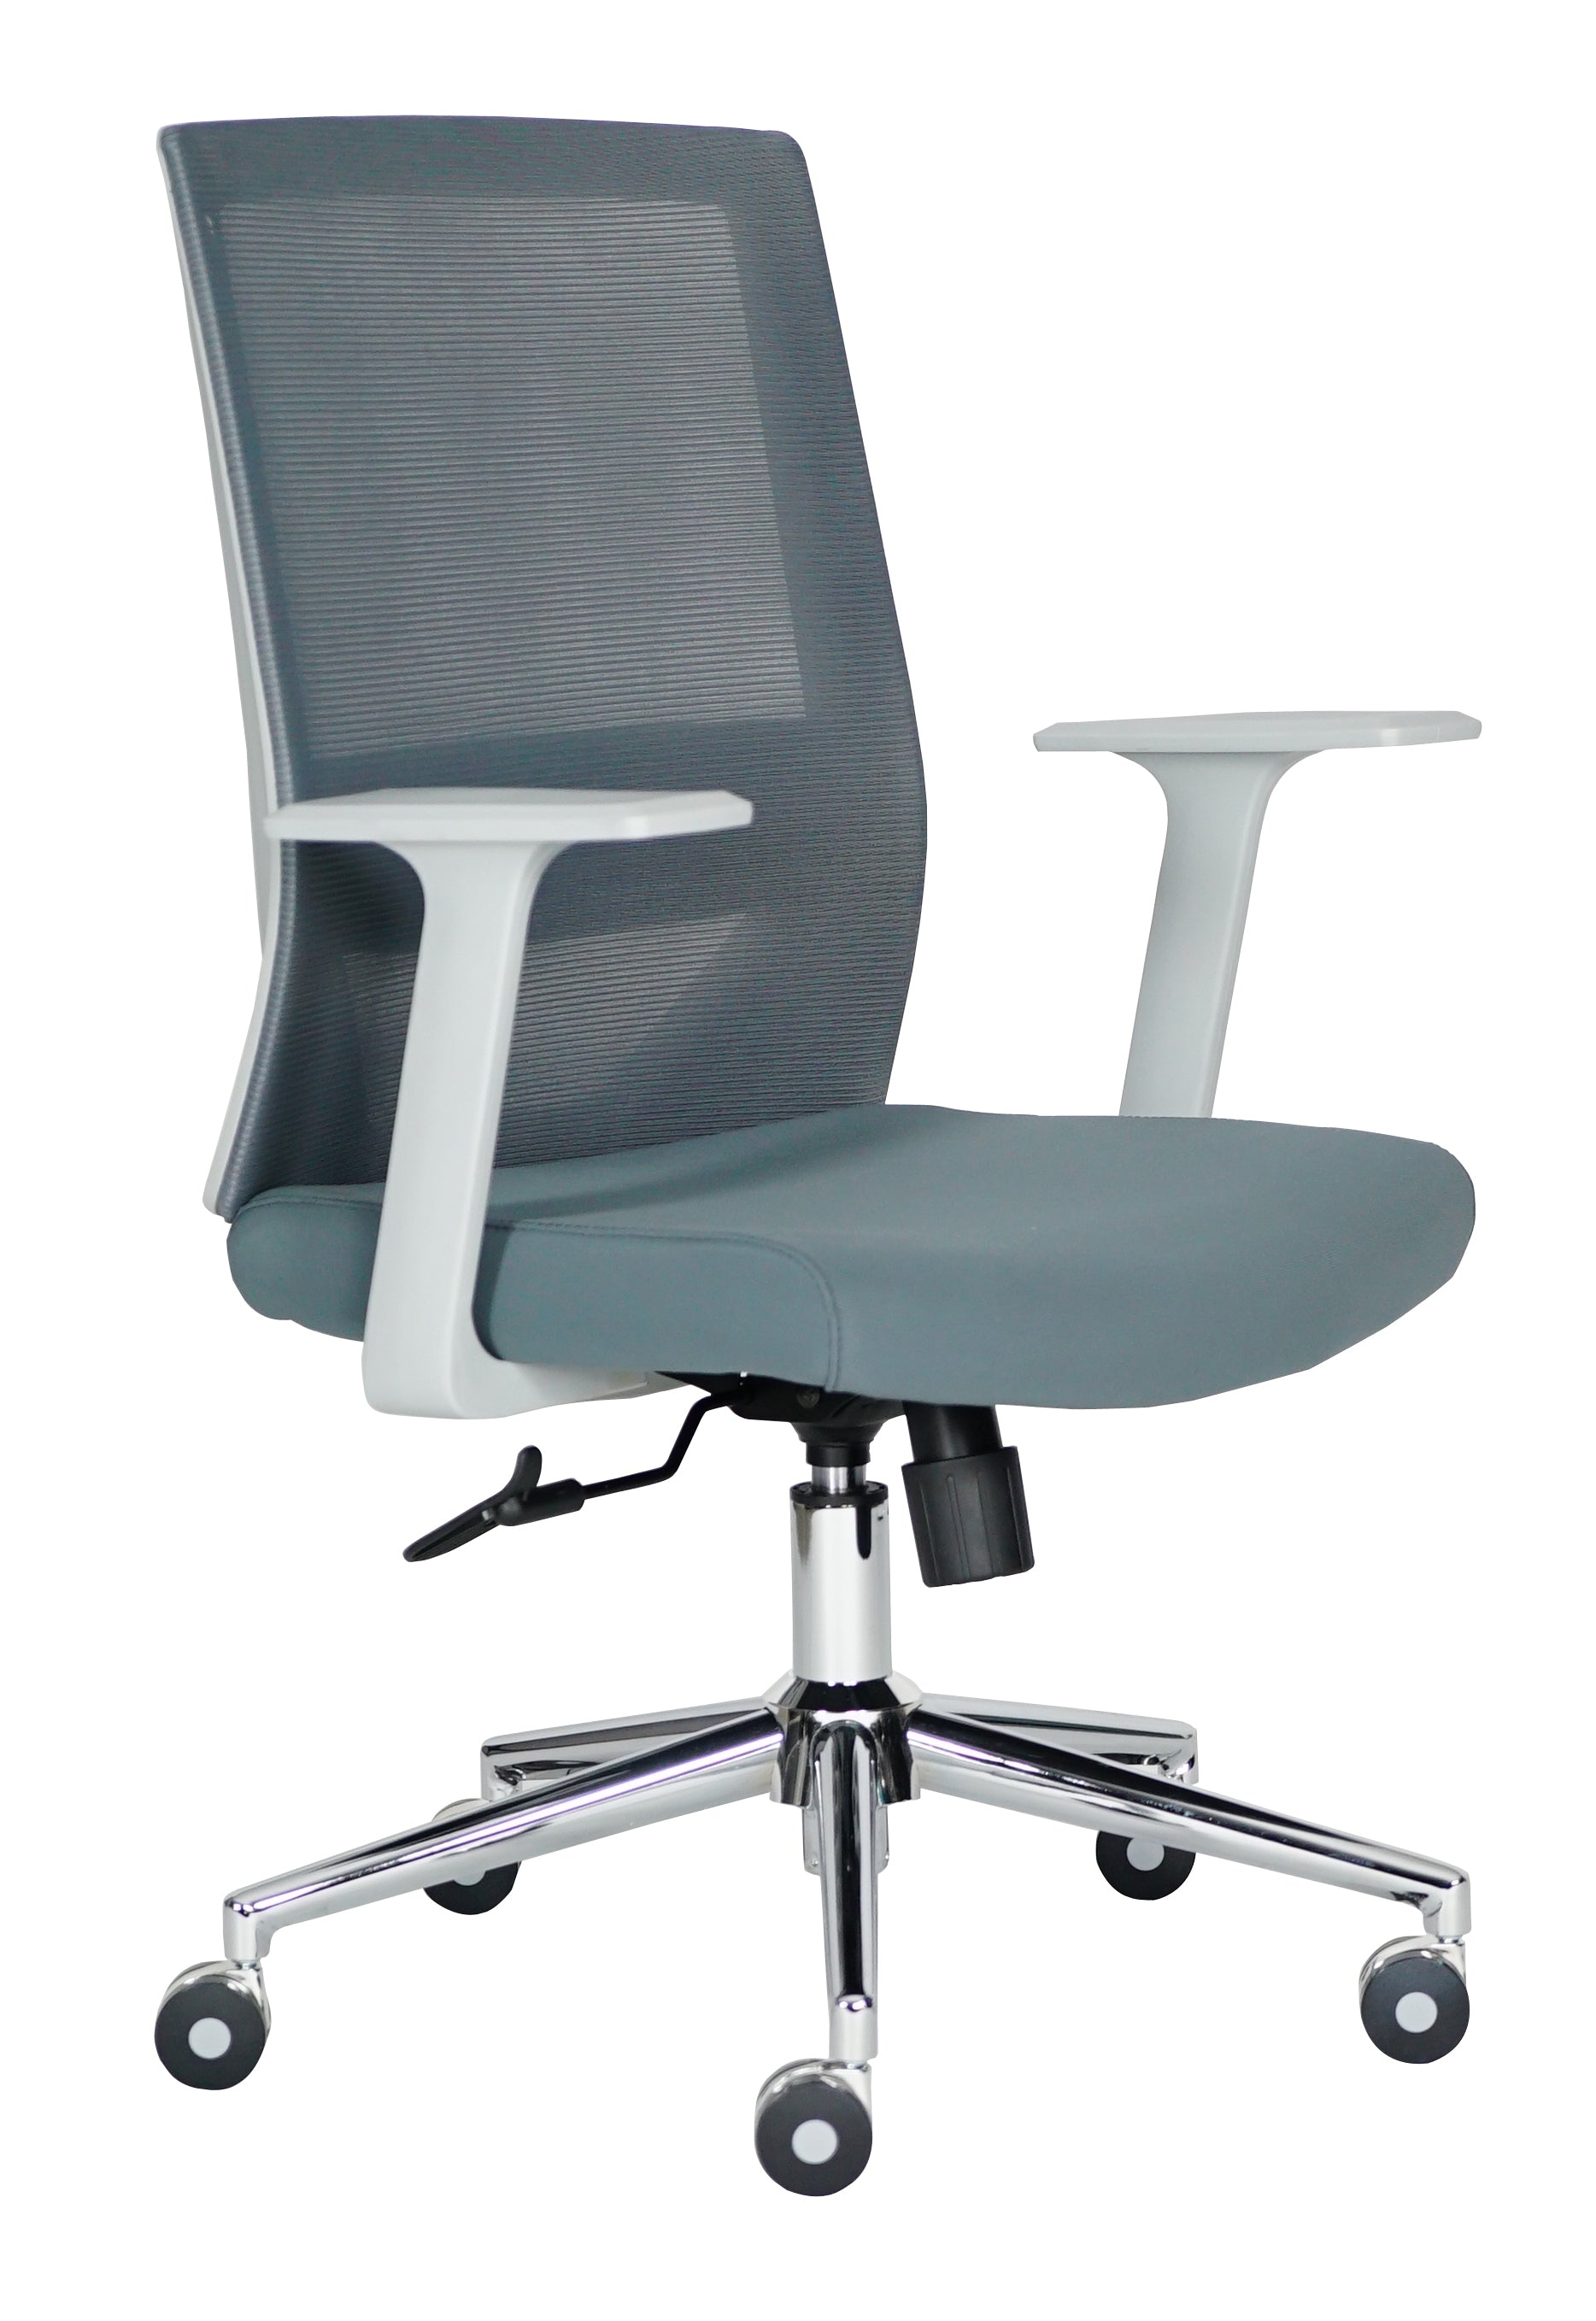 Silla Ejecutiva Vision Gray RB - offimobile